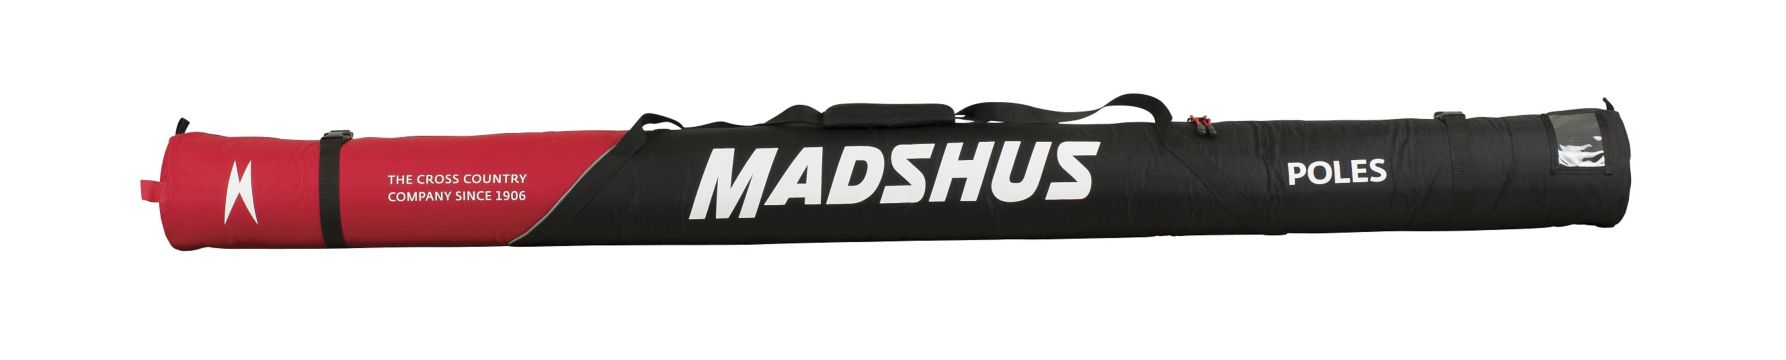 Madshus Pole Bag Accessory